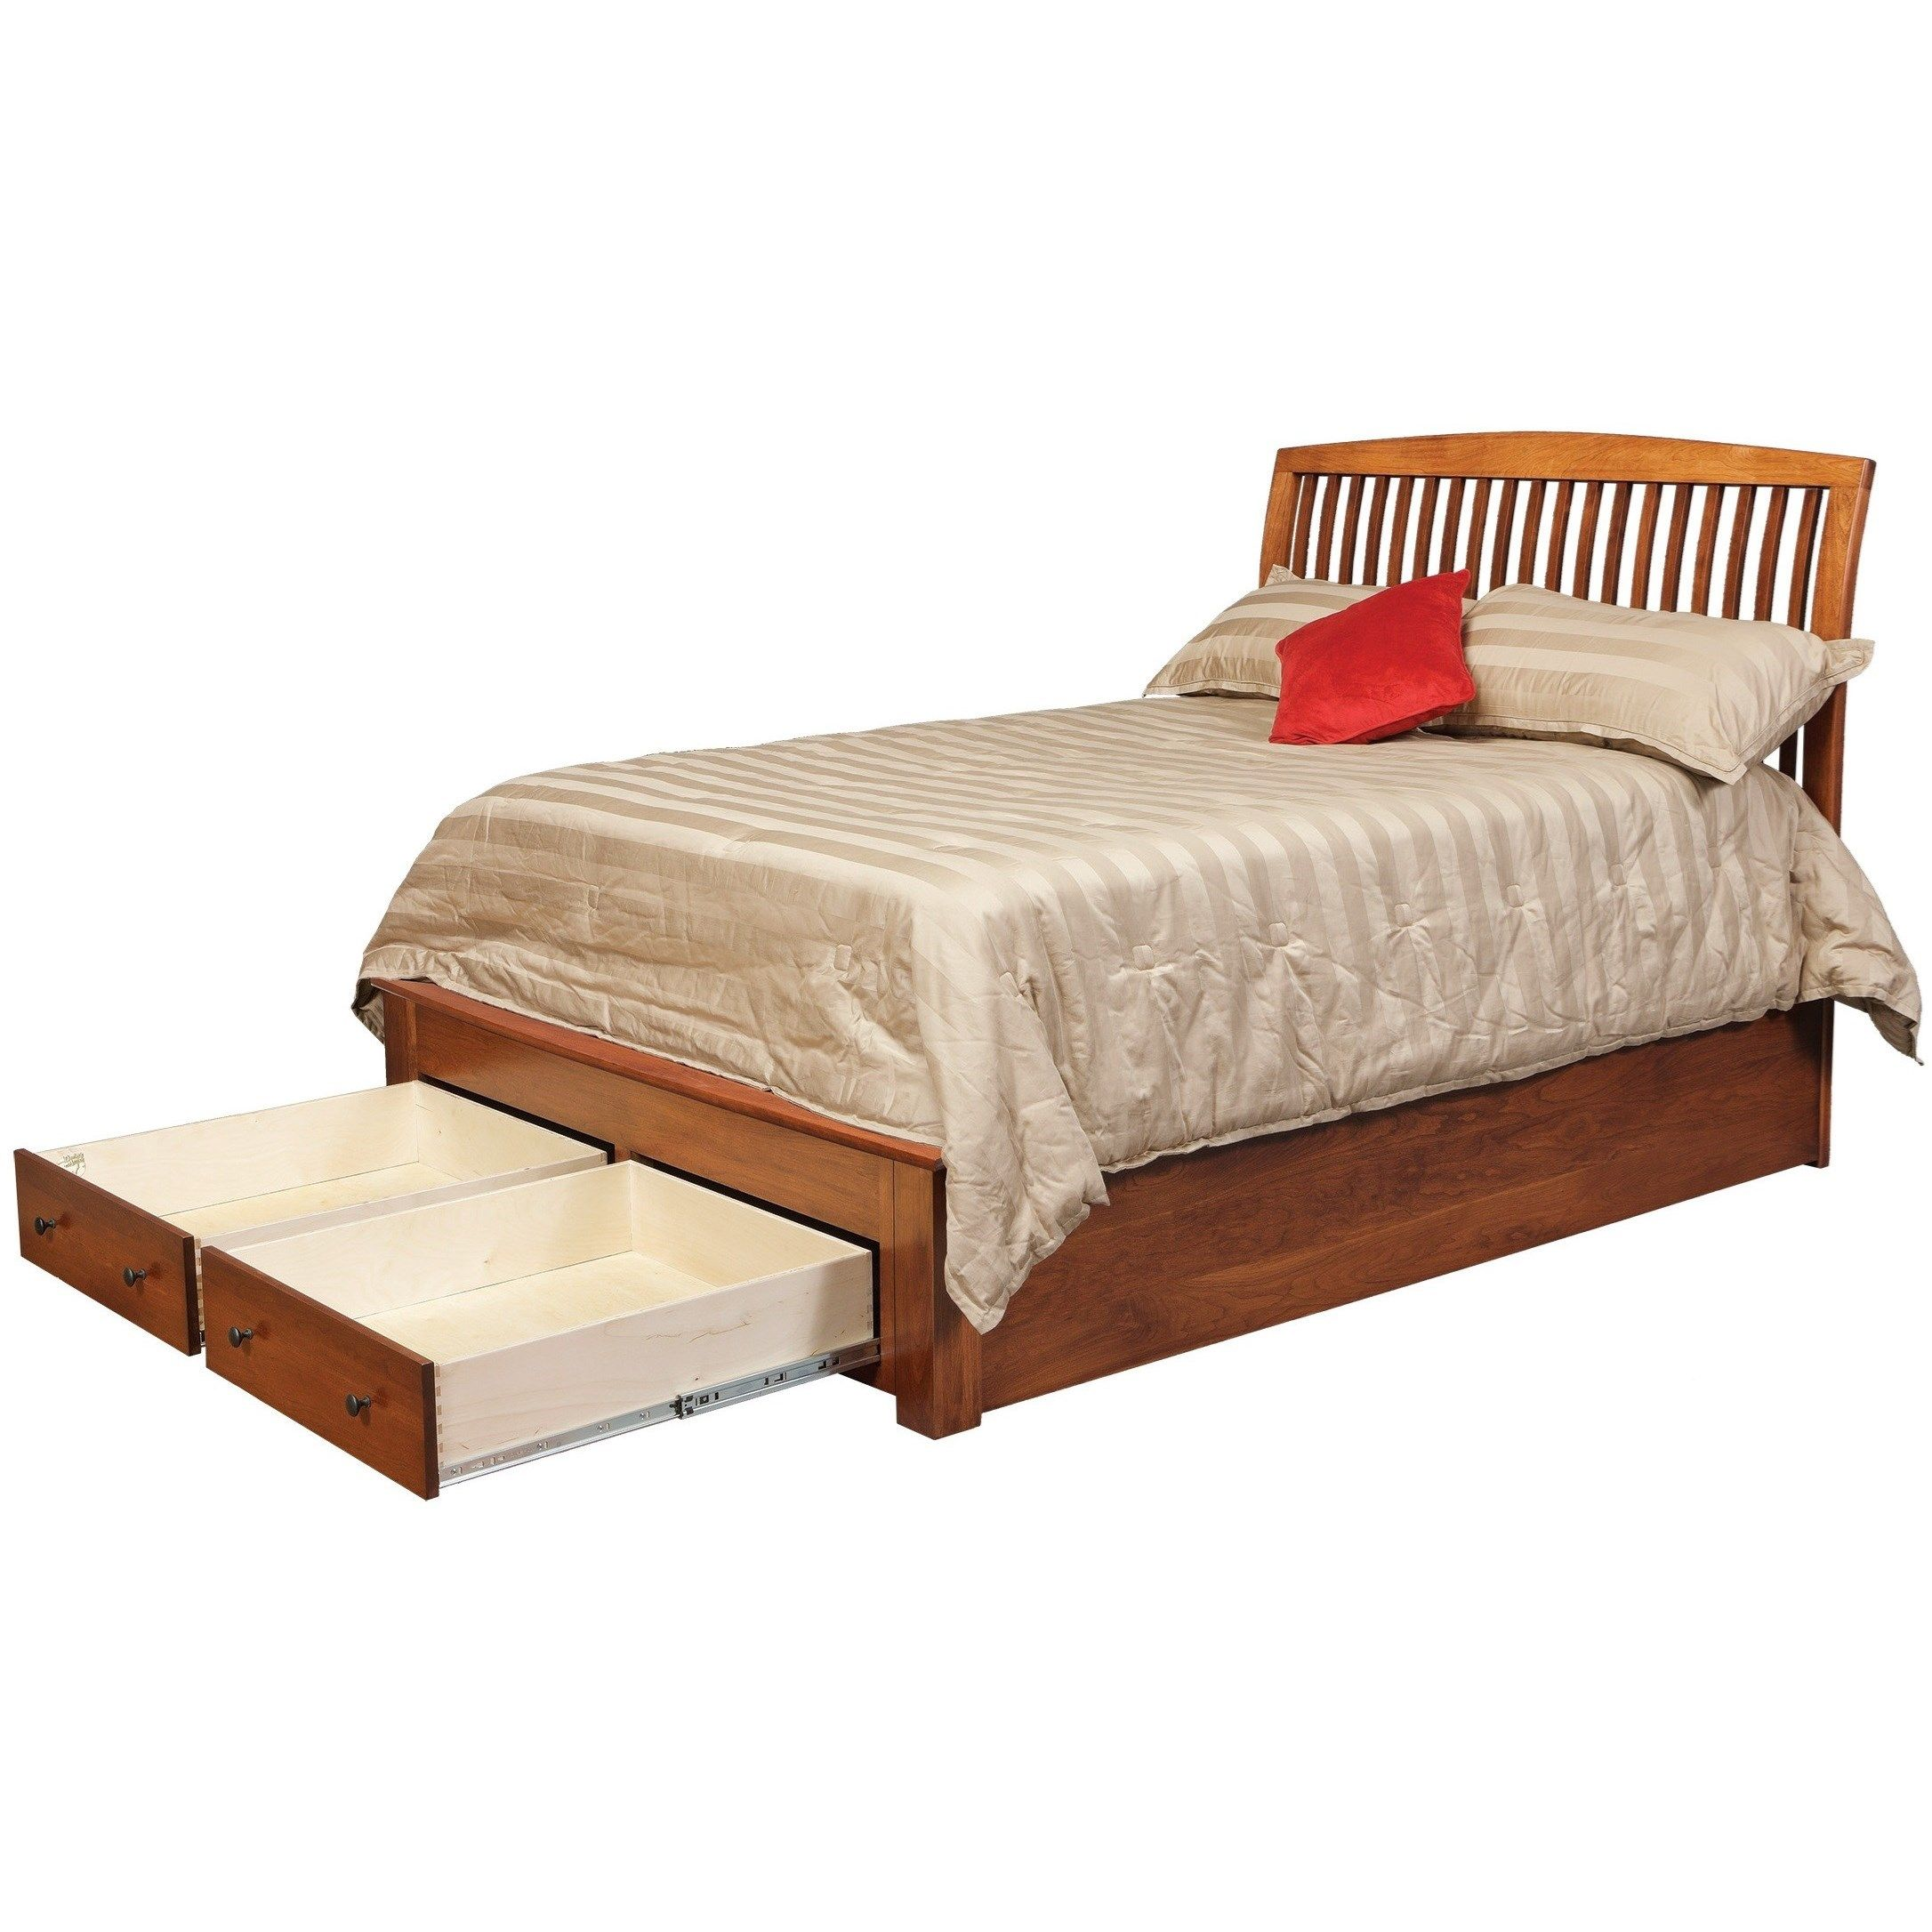 Queen Pedestal Bed With 2 Footboard Drawers